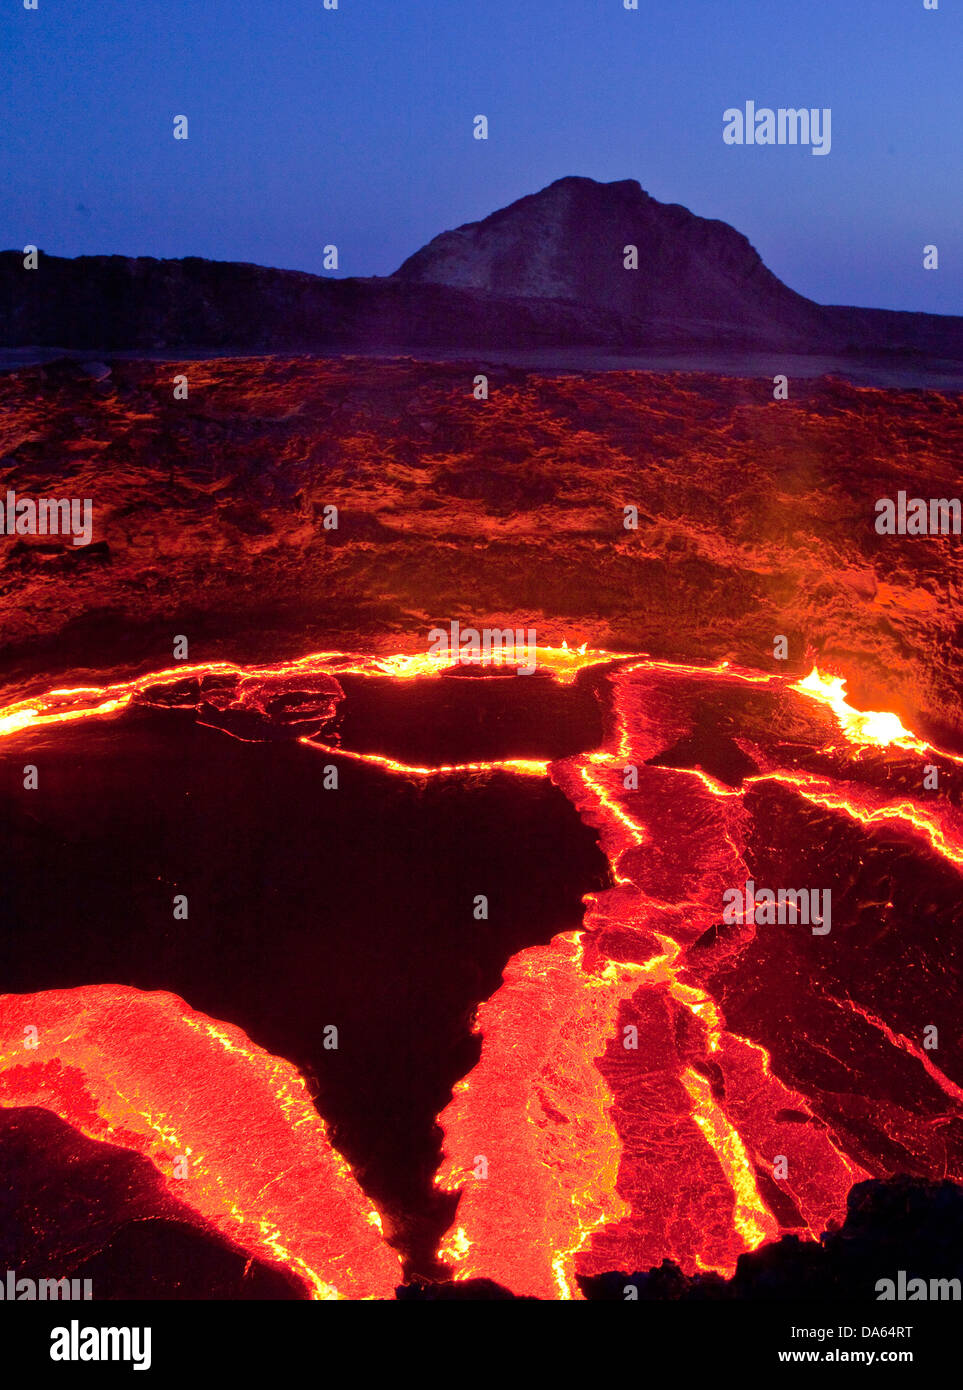 glow, smoulder, lava, eruption, Ertale, volcano, volcanical, Africa, mountain, mountains, fire, nature, Ethiopia, - Stock Image